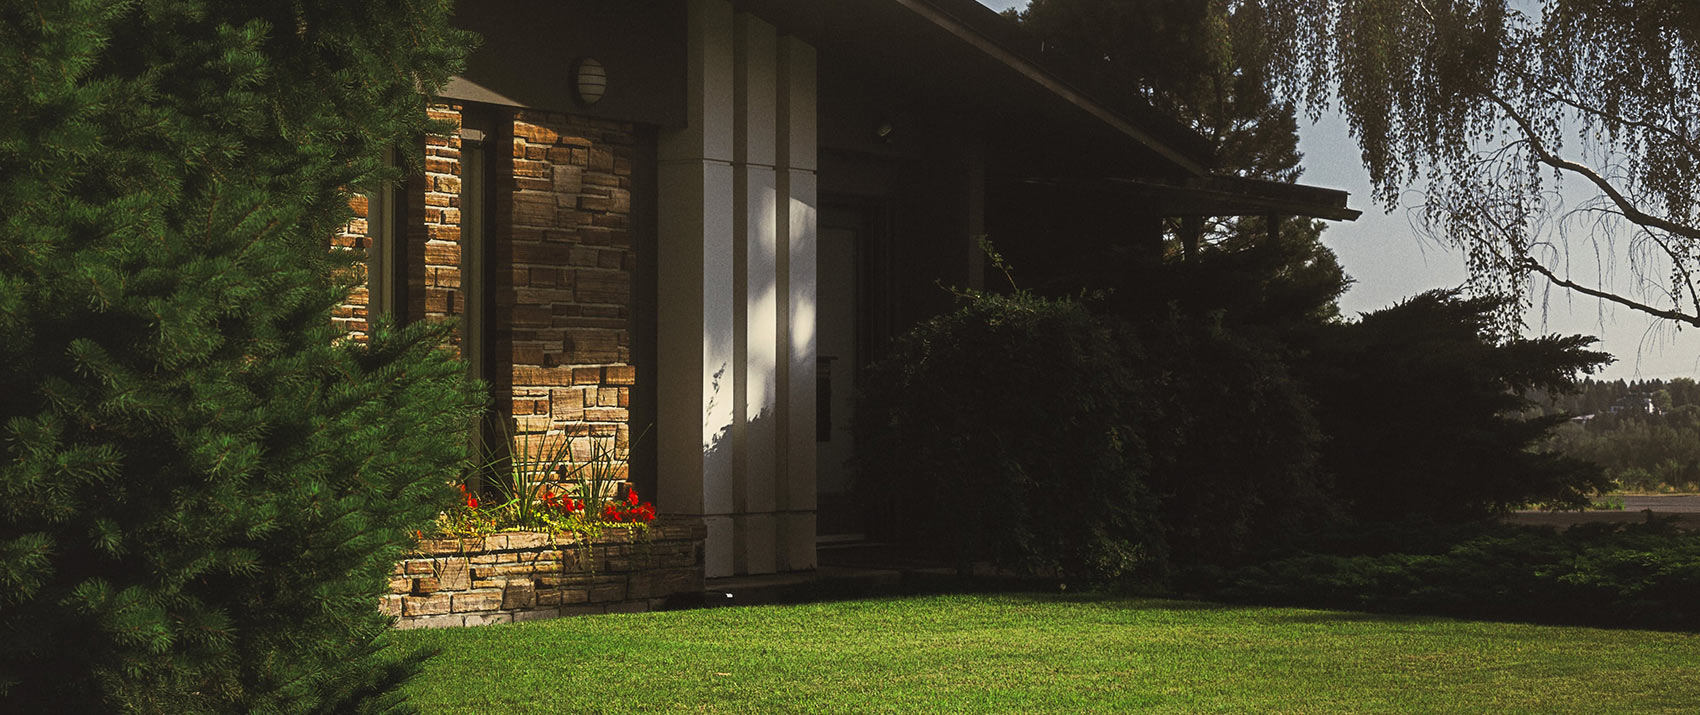 Fall Landscaping Ideas For Dallas Apartment Buildings